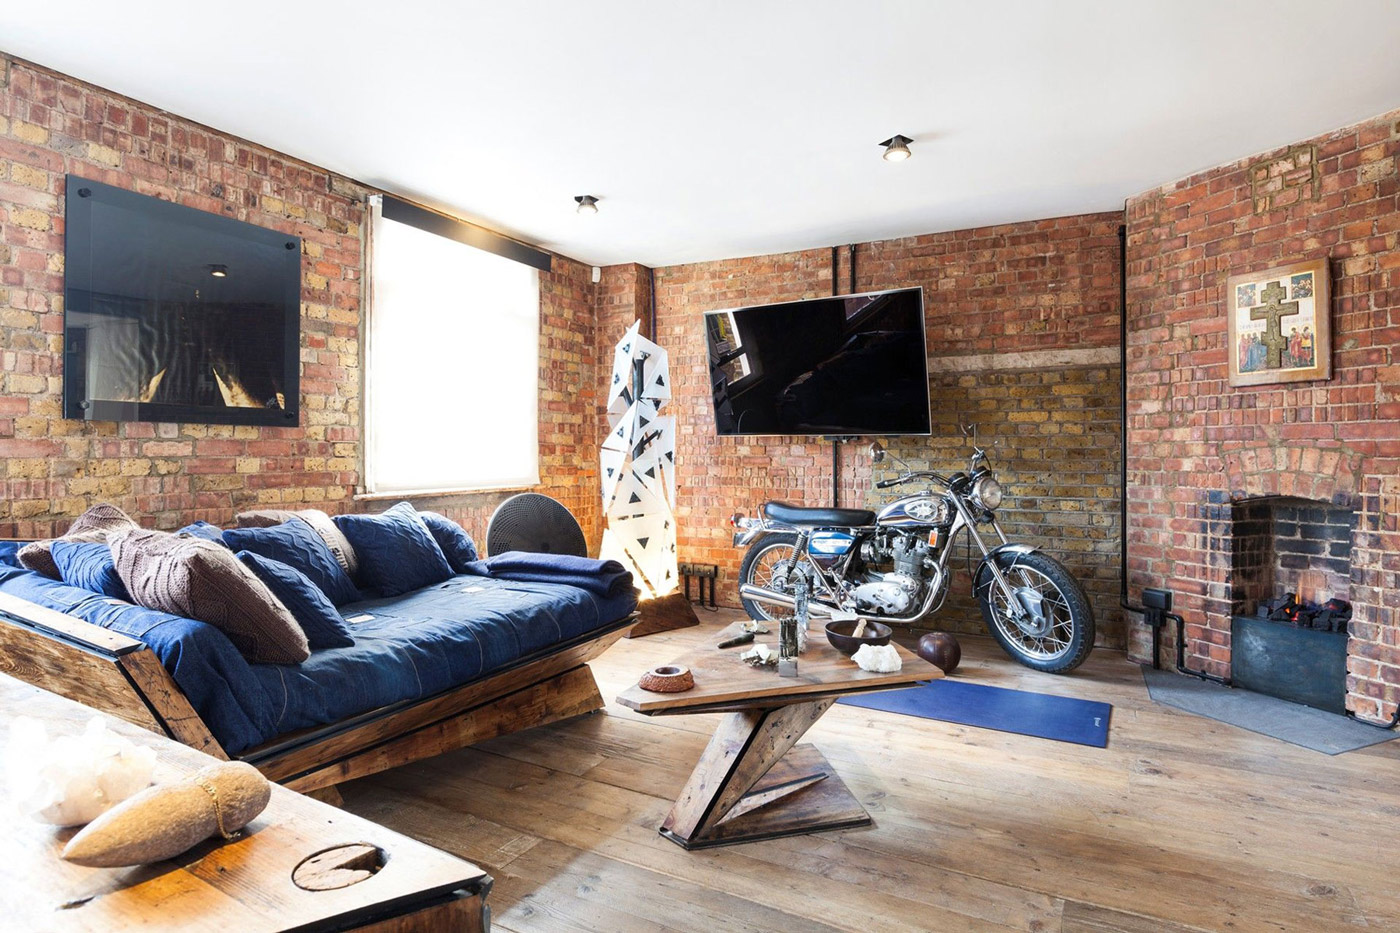 Brick Walls, Living Room, Wooden Sofa, Coffee Table, Fireplace, Archer  Street